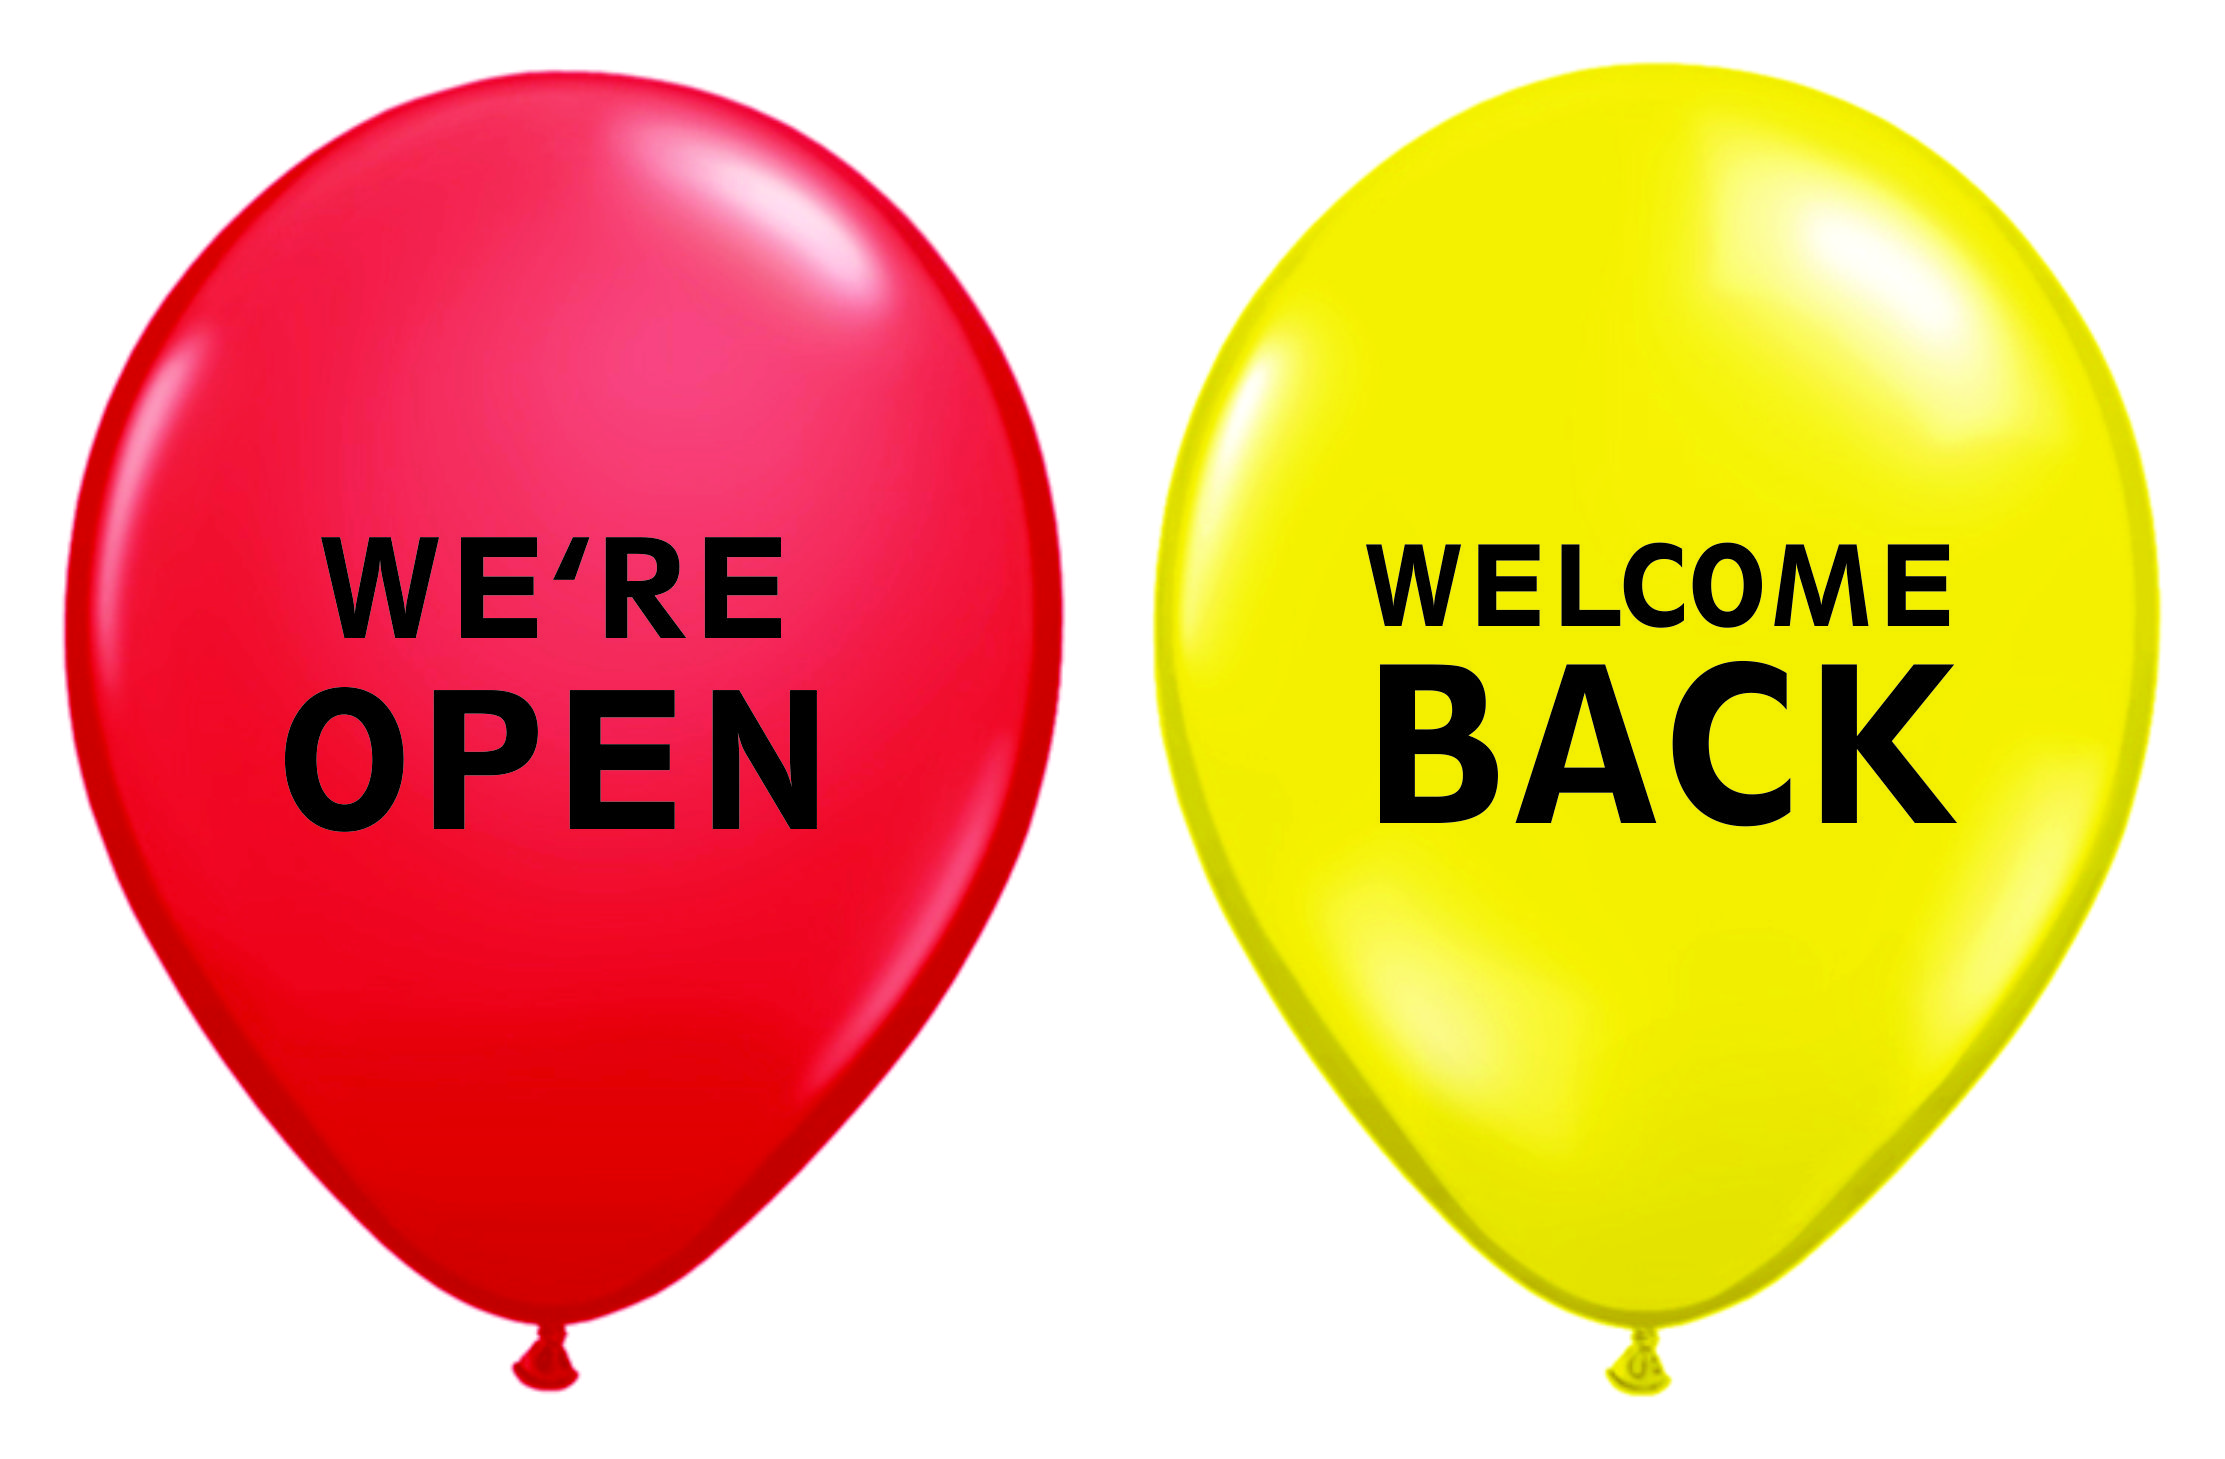 We're Open Welcome Balloons